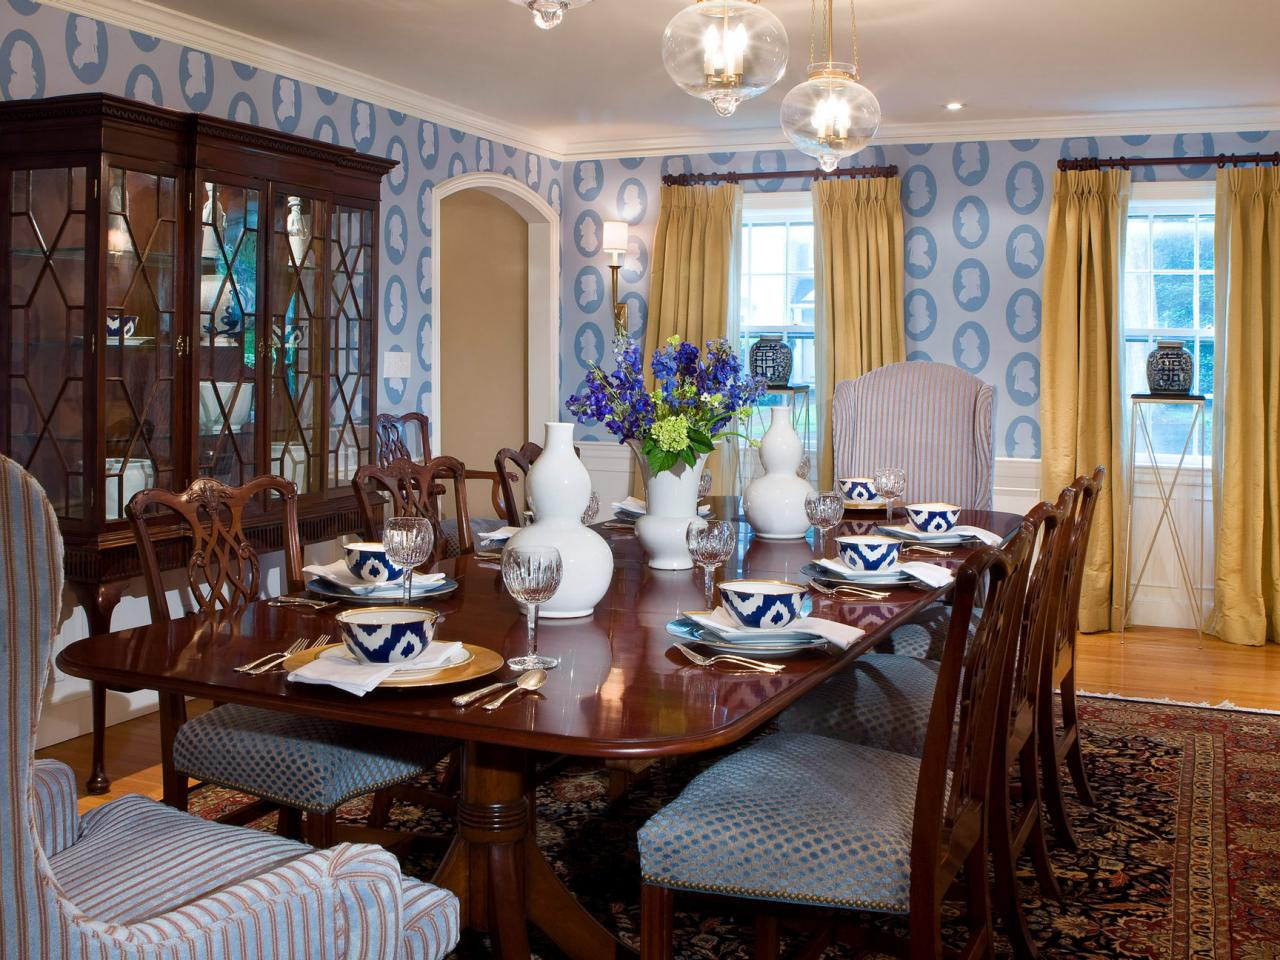 blue into your design color palette and schemes for rooms in your